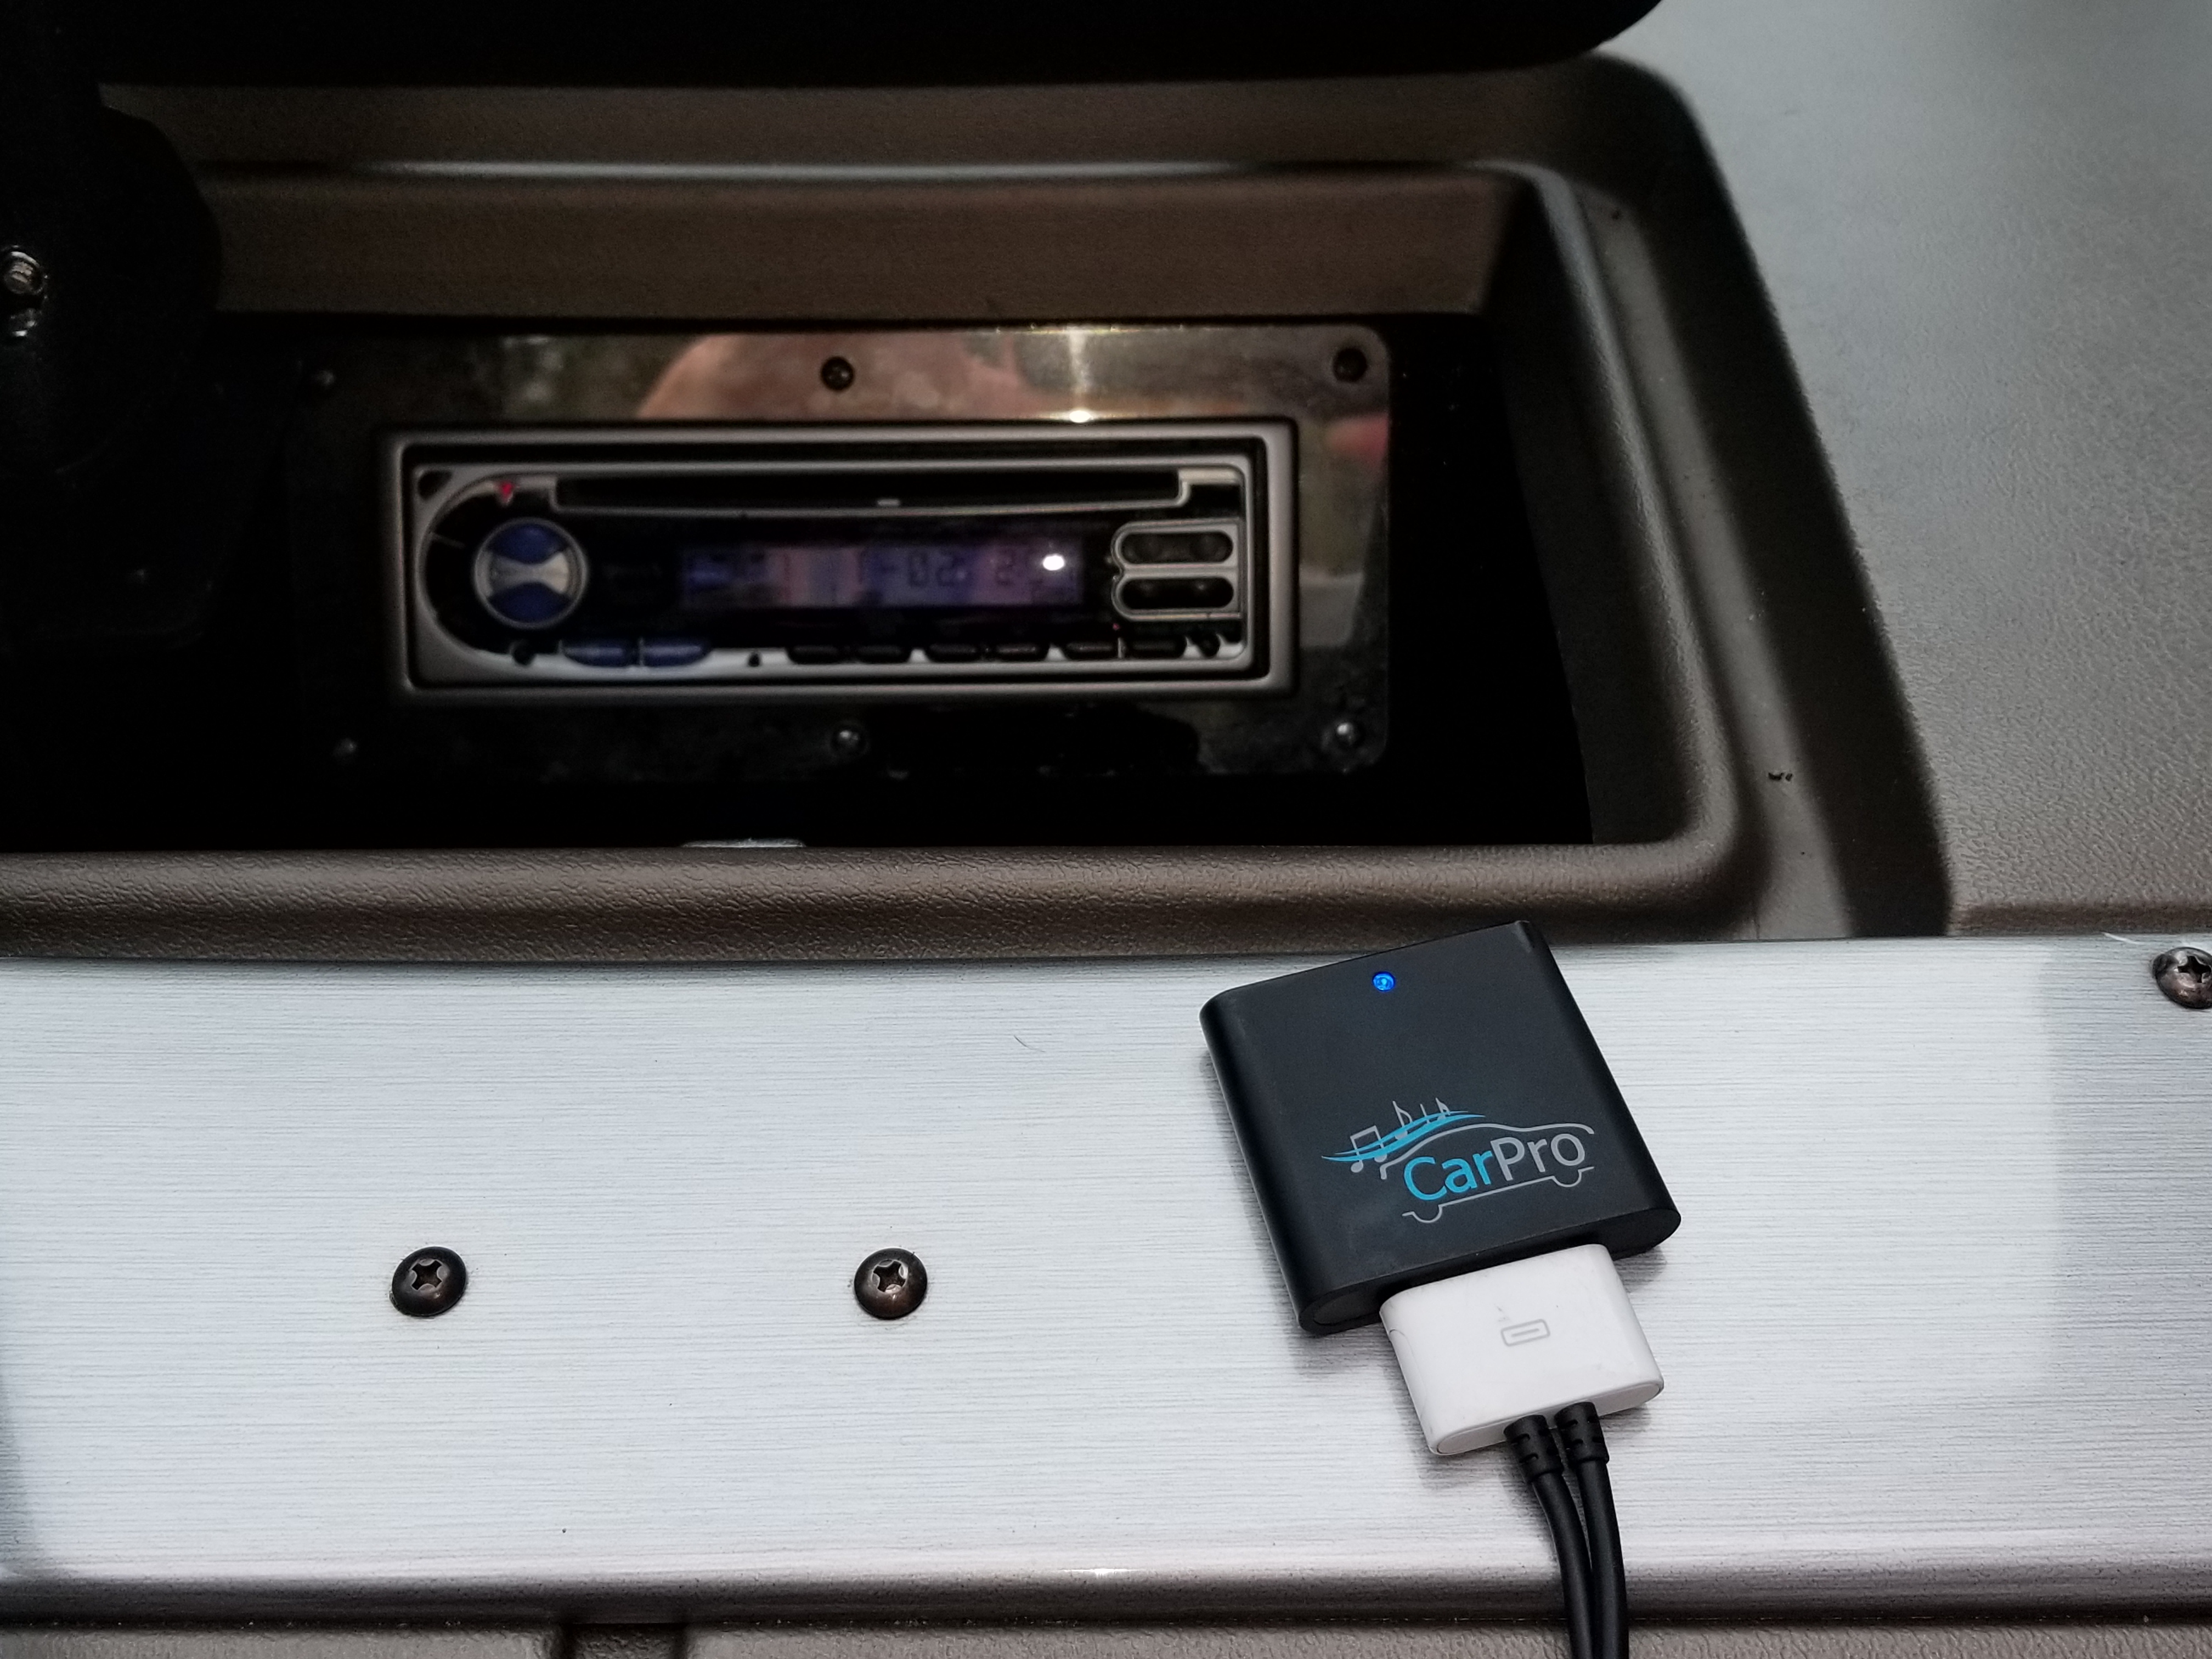 Kenwood Marine Stereo attached to the CoolStream CarPro